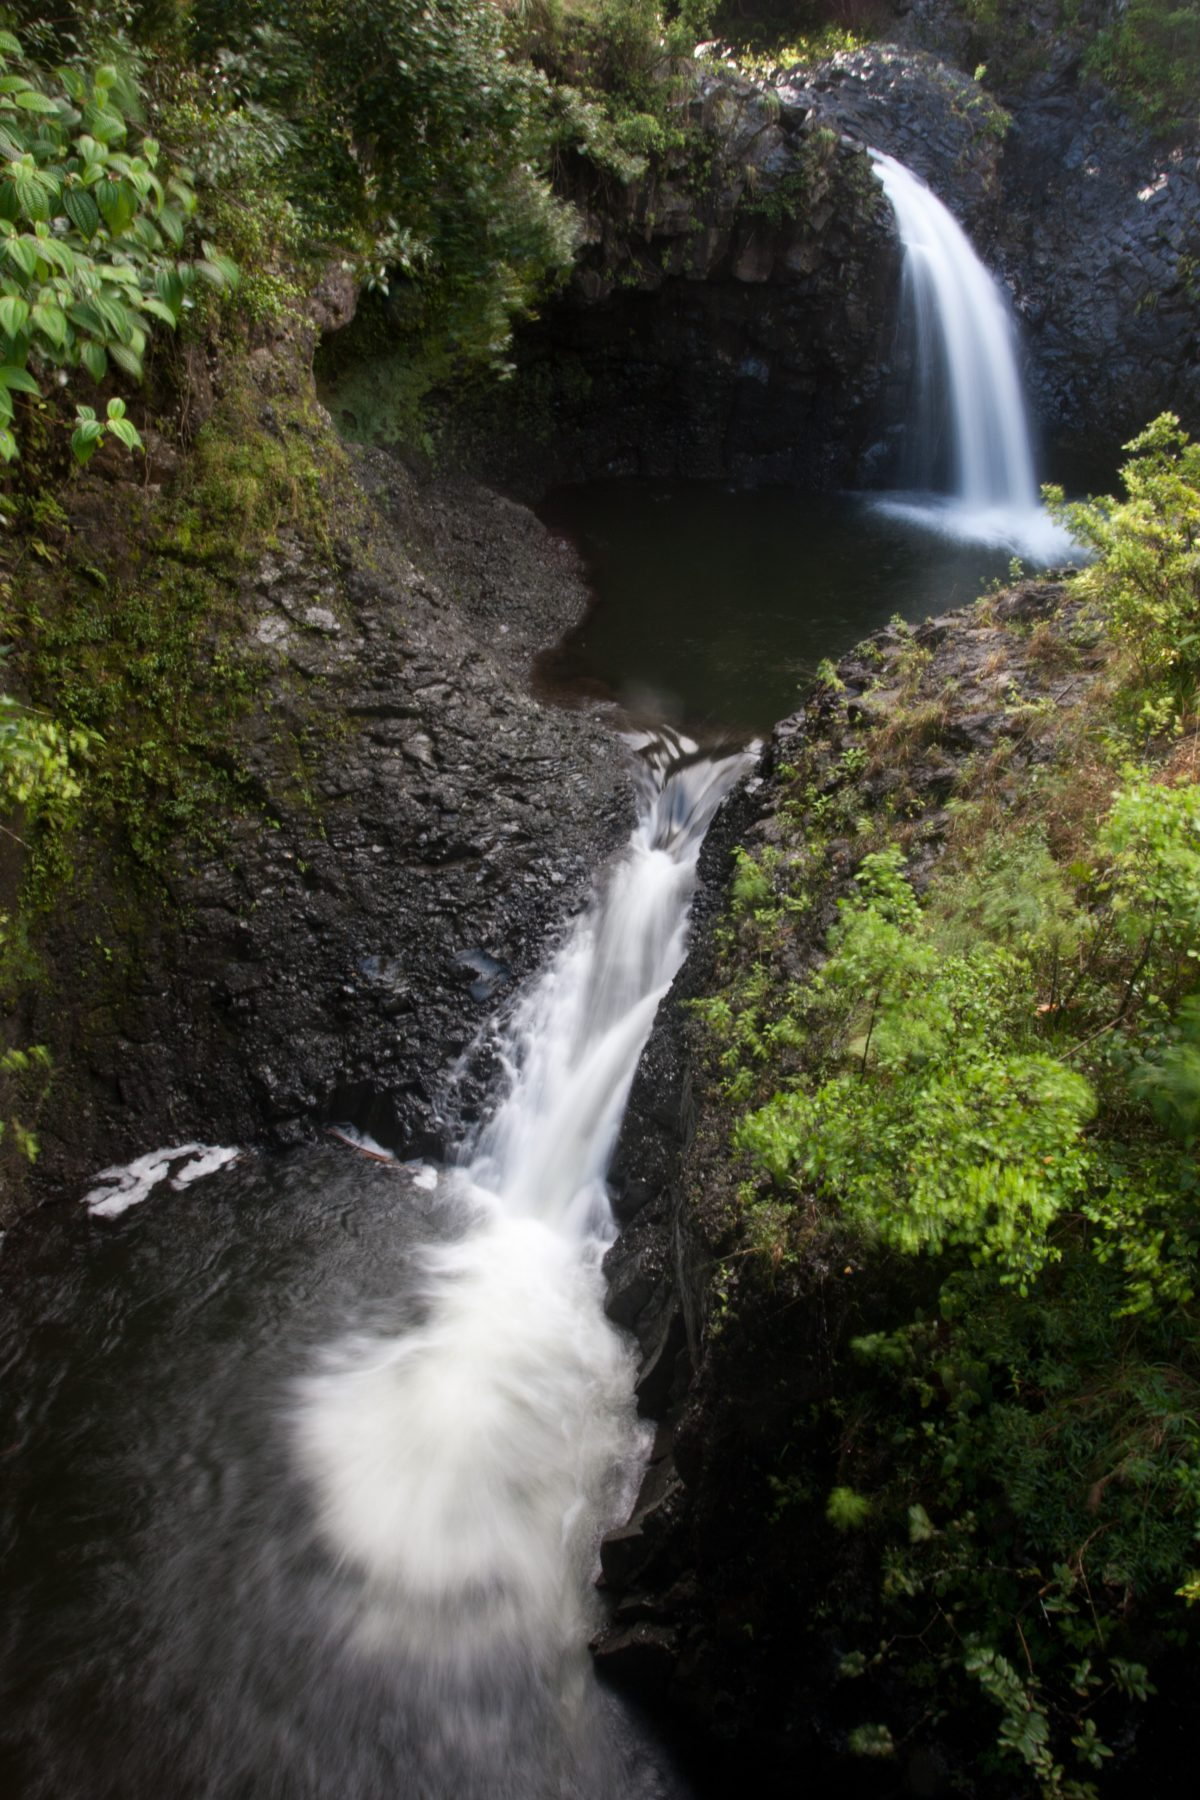 Kipahulu, forest, tree, river, waterfall